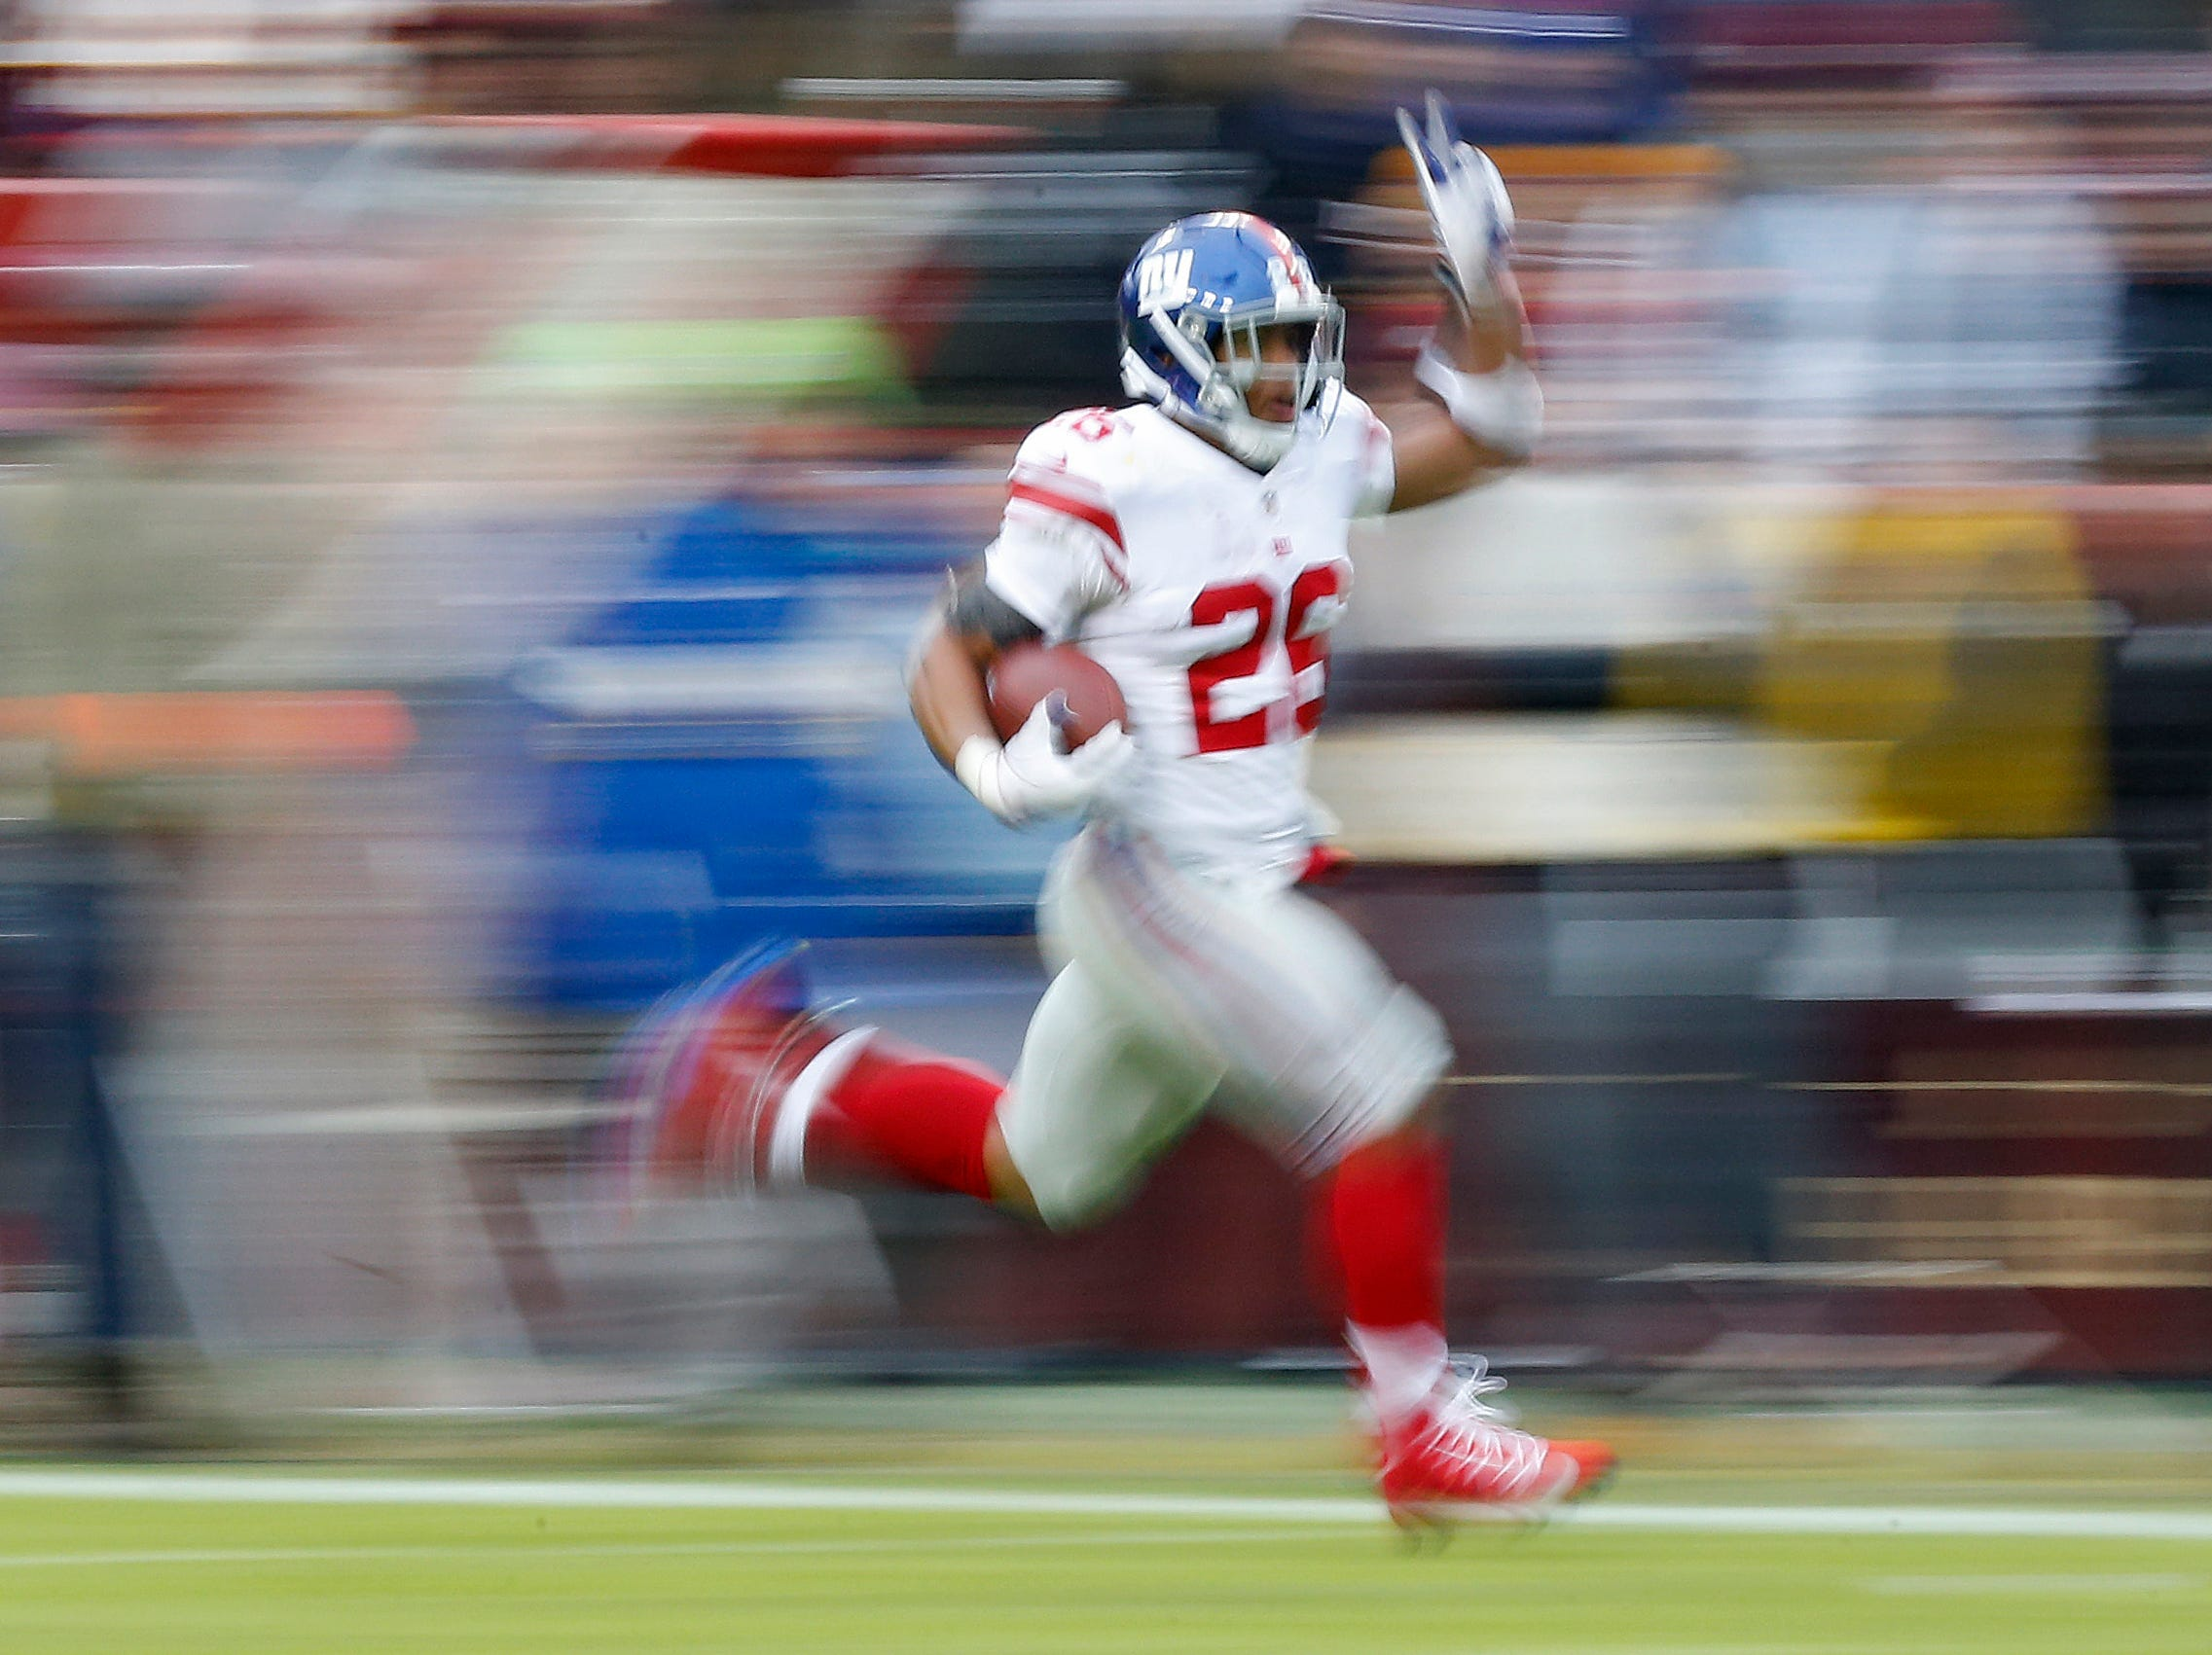 Giants running back Saquon Barkley scores a touchdown against the Redskins.